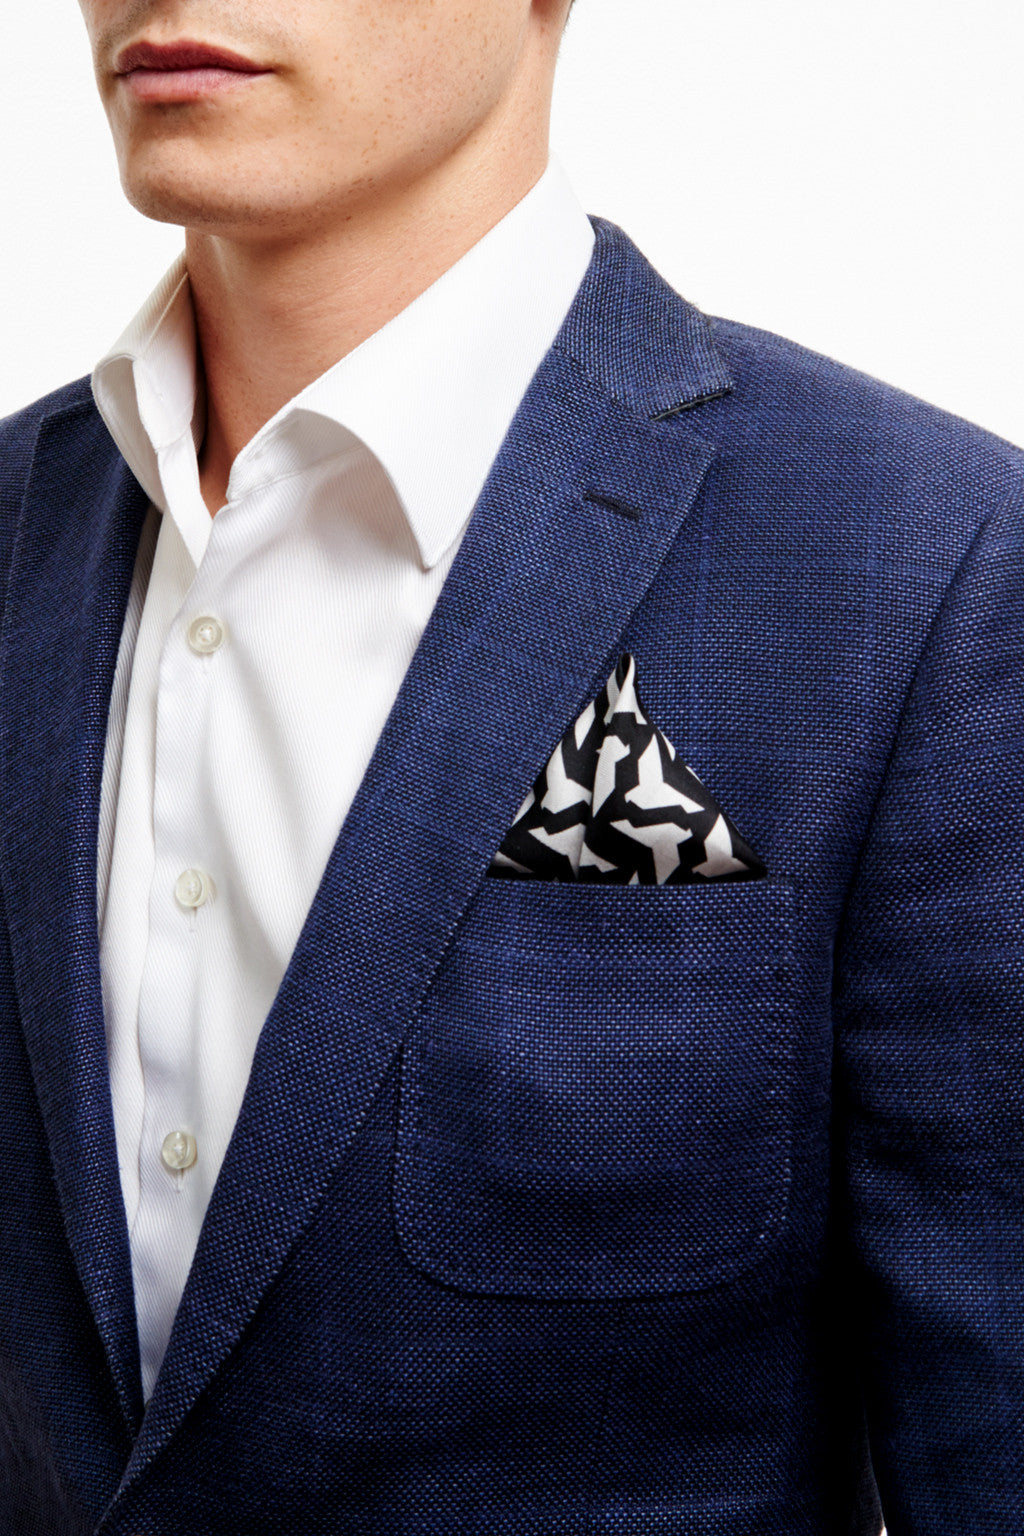 BLACK ORIGAMI BIRD POCKET SQUARE